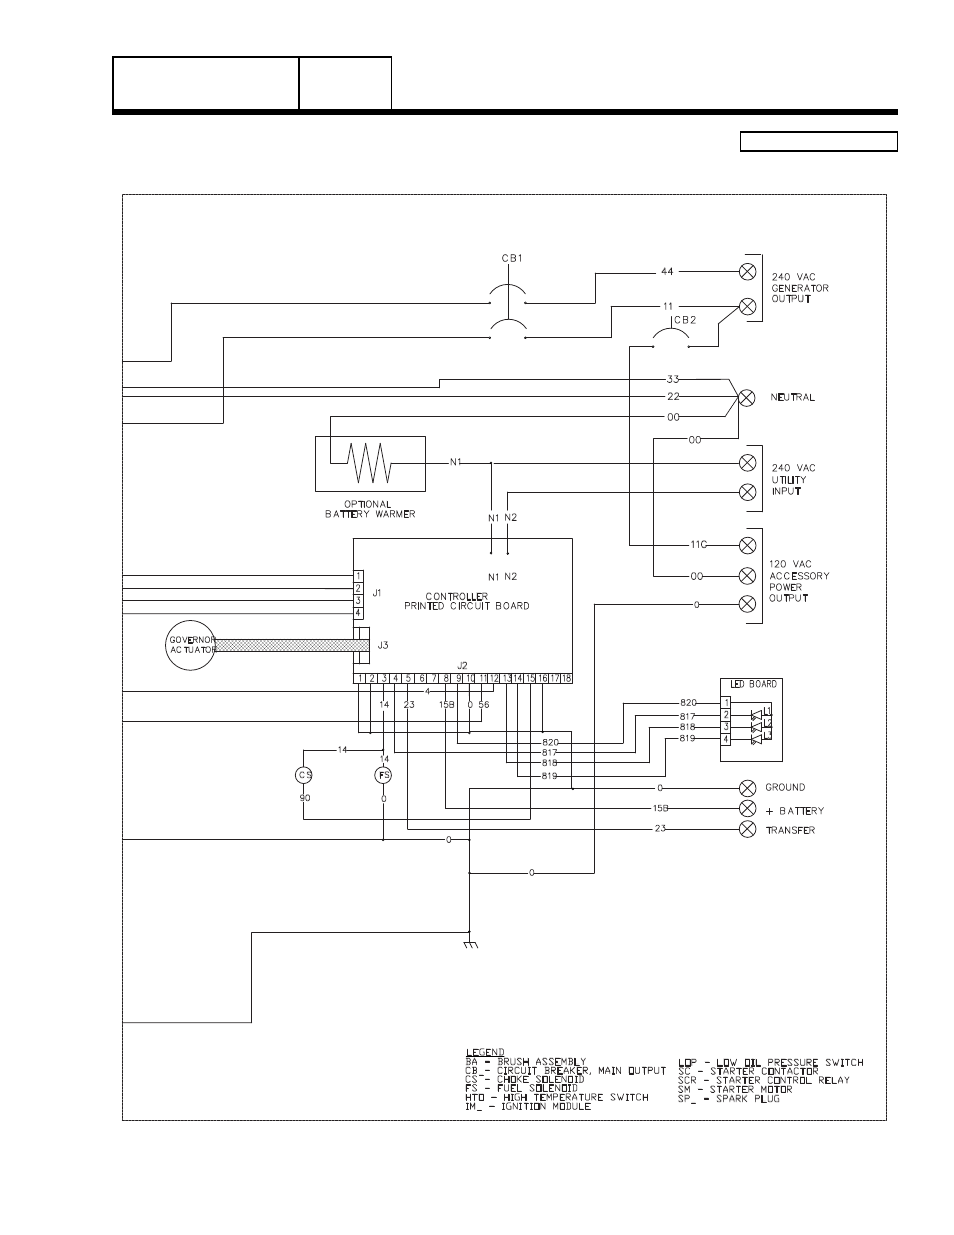 Generac Schematic Diagrams Free Download Gp15000e Wiring Diagram Group G 17 Kw Home Standby Part 7 Page 179